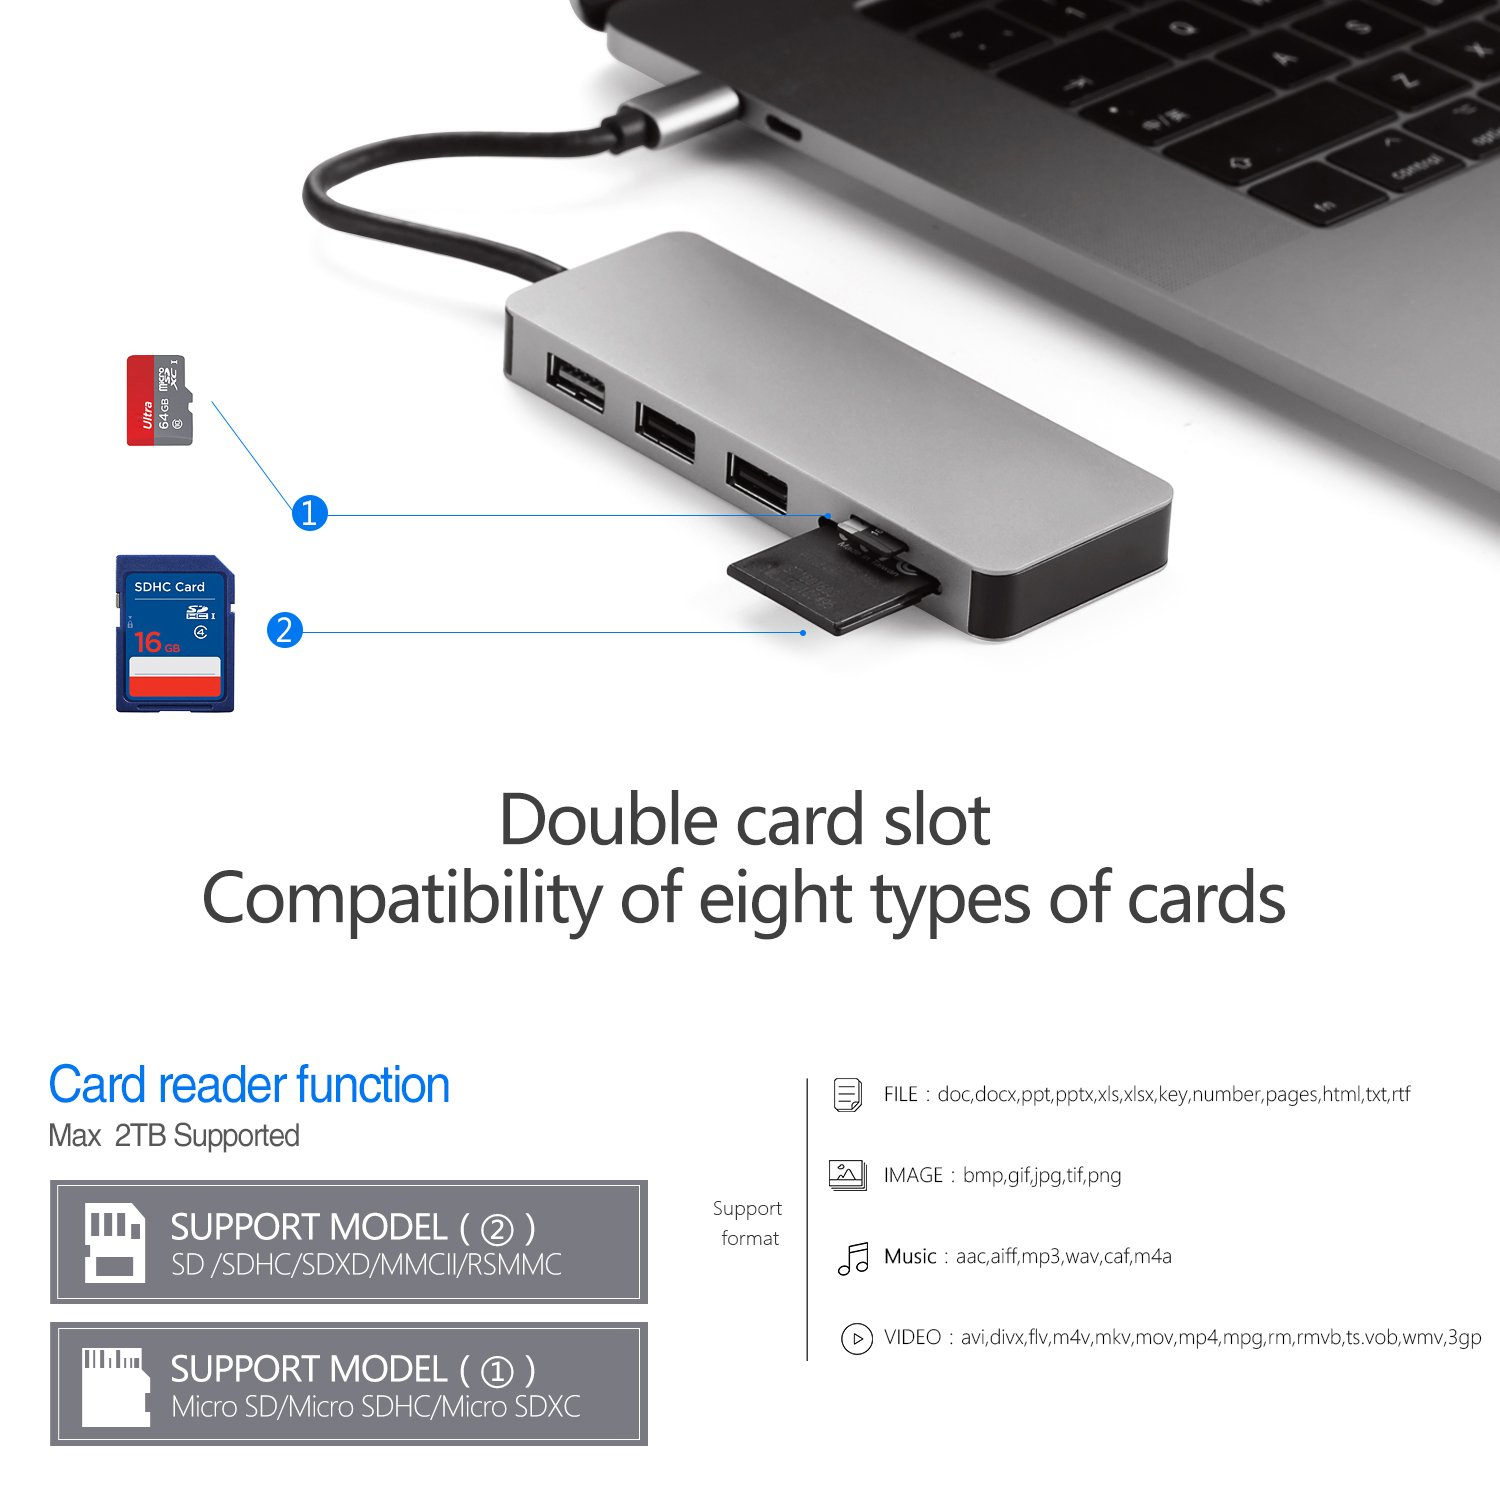 USB C Hub, 7 in 1 Type C Dock with HDMI Output, PD Charge, USB 3 0  Port,SDHC/Micro SD Card Reader for new MacBook / MacBook Pro, other USB C  Port